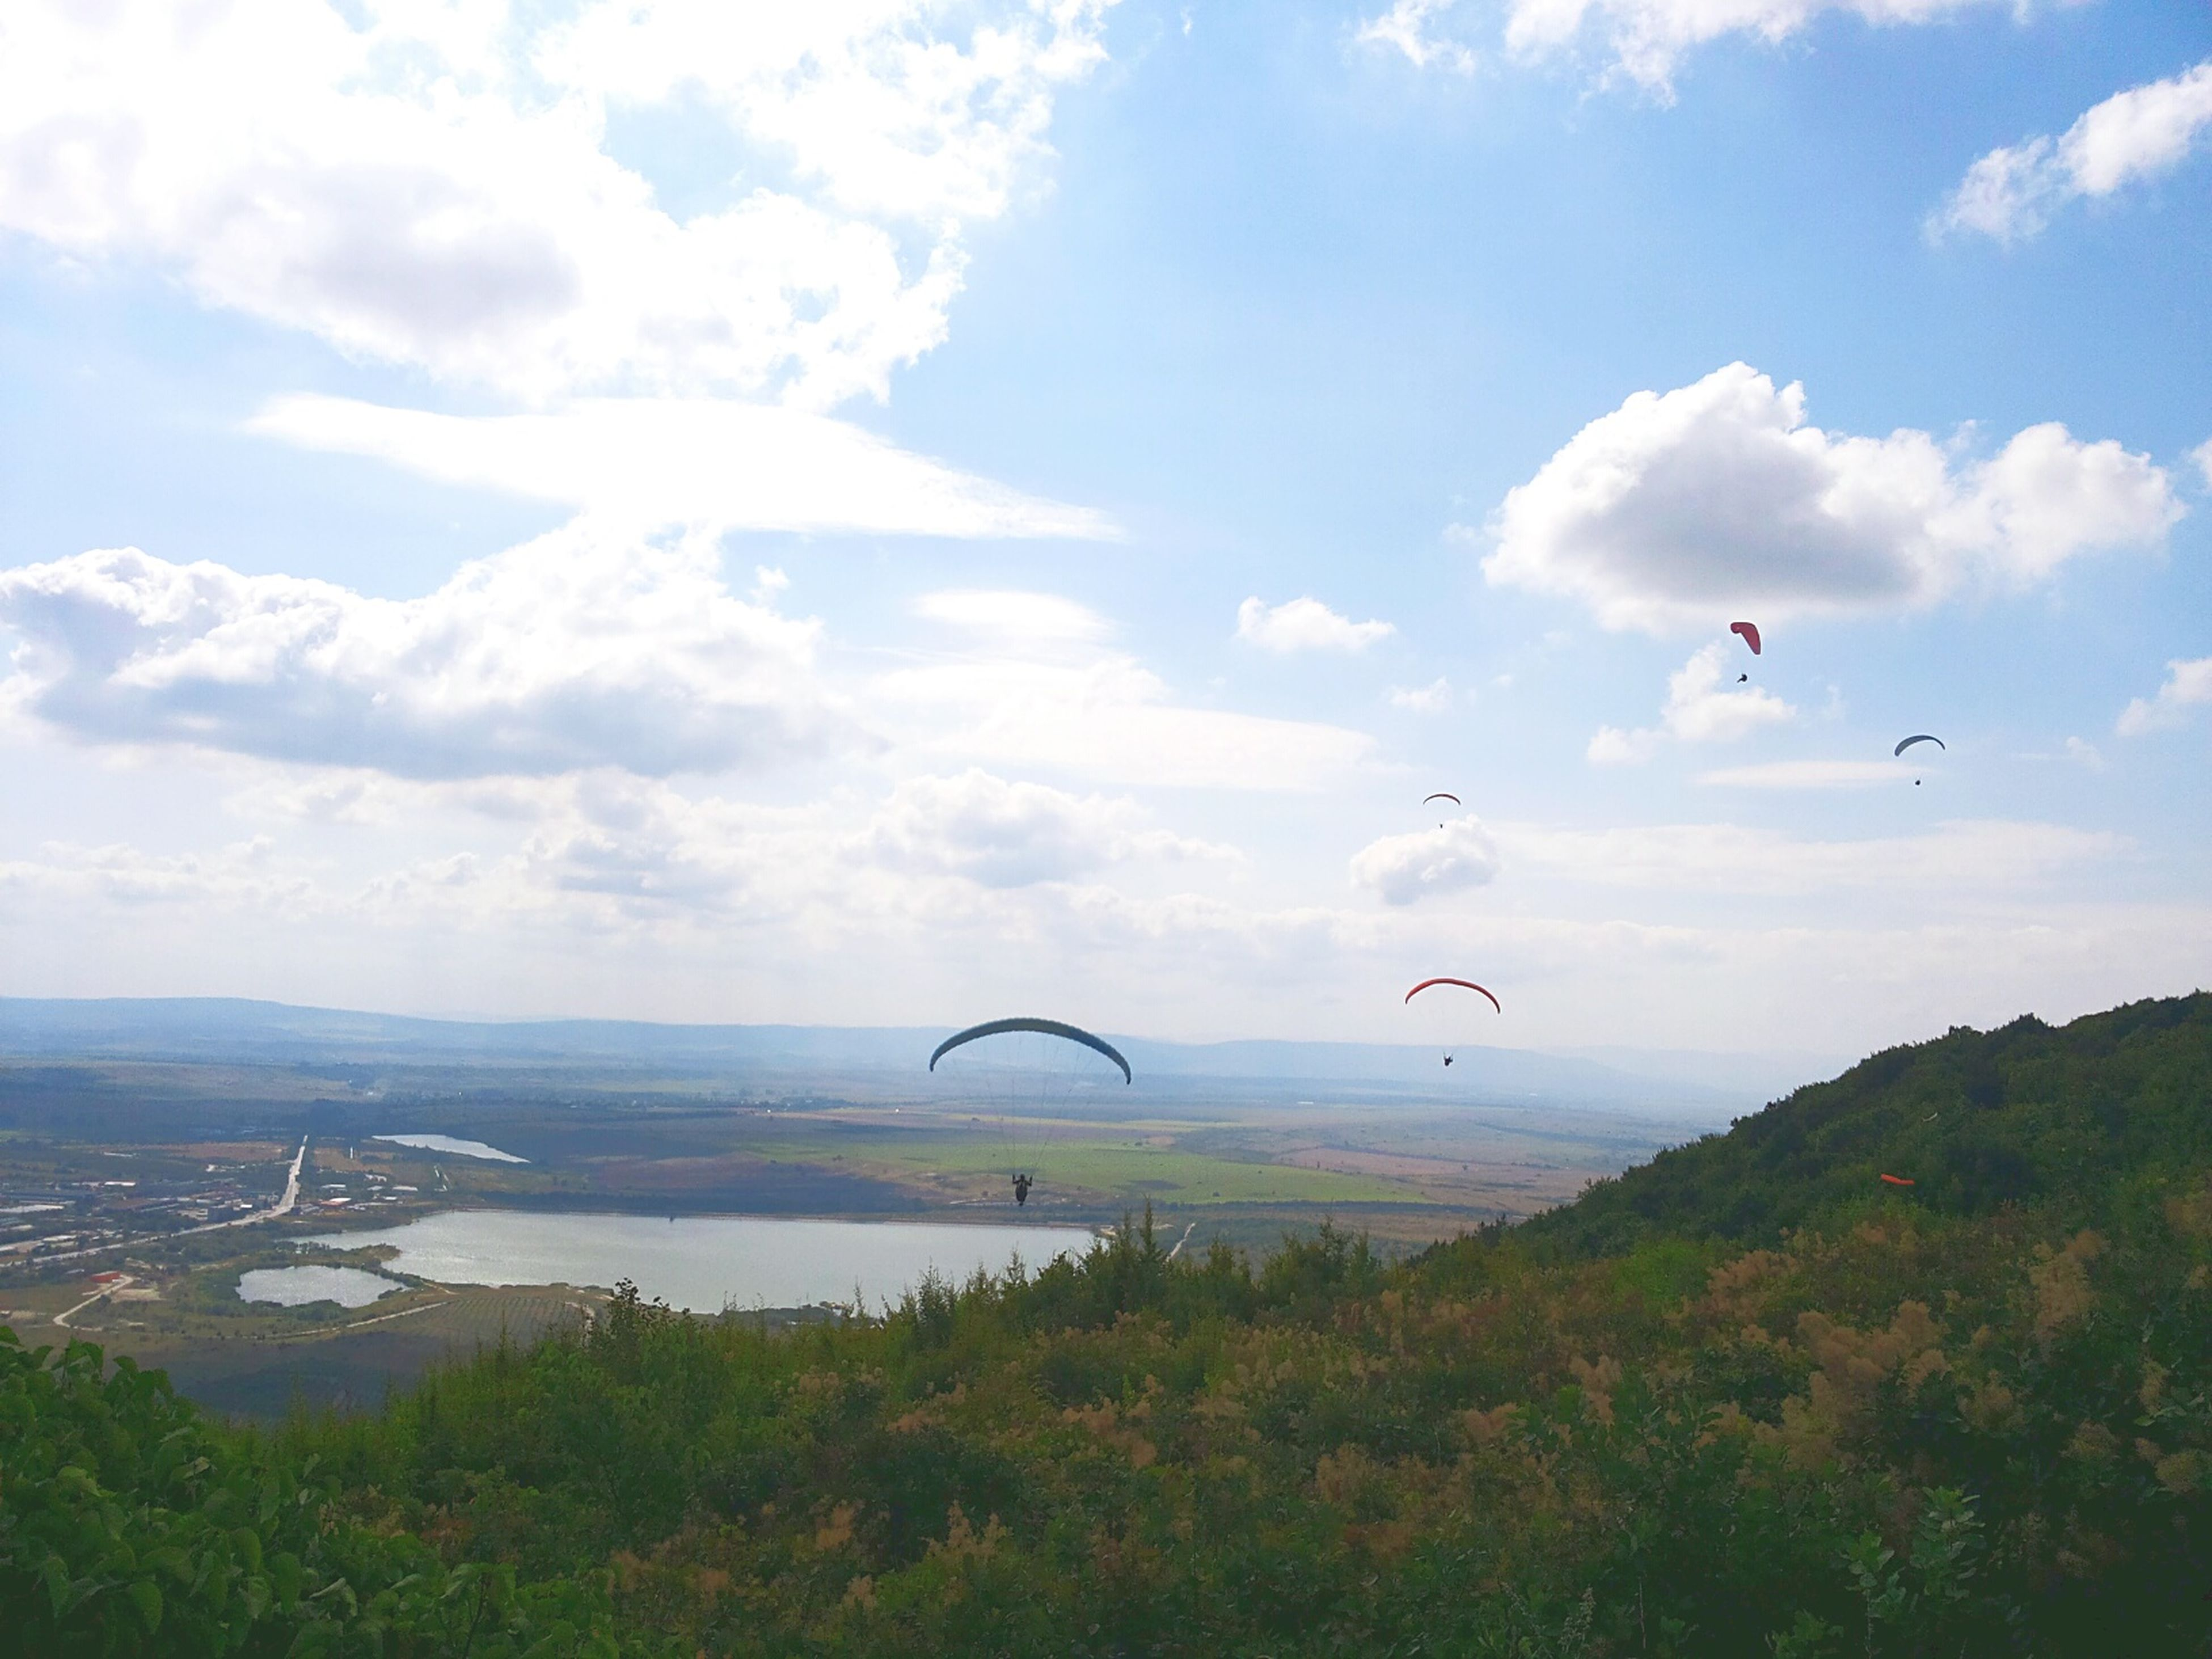 flying, sky, mid-air, parachute, paragliding, cloud - sky, scenics, extreme sports, leisure activity, adventure, beauty in nature, nature, tranquility, tranquil scene, mountain, freedom, landscape, cloud